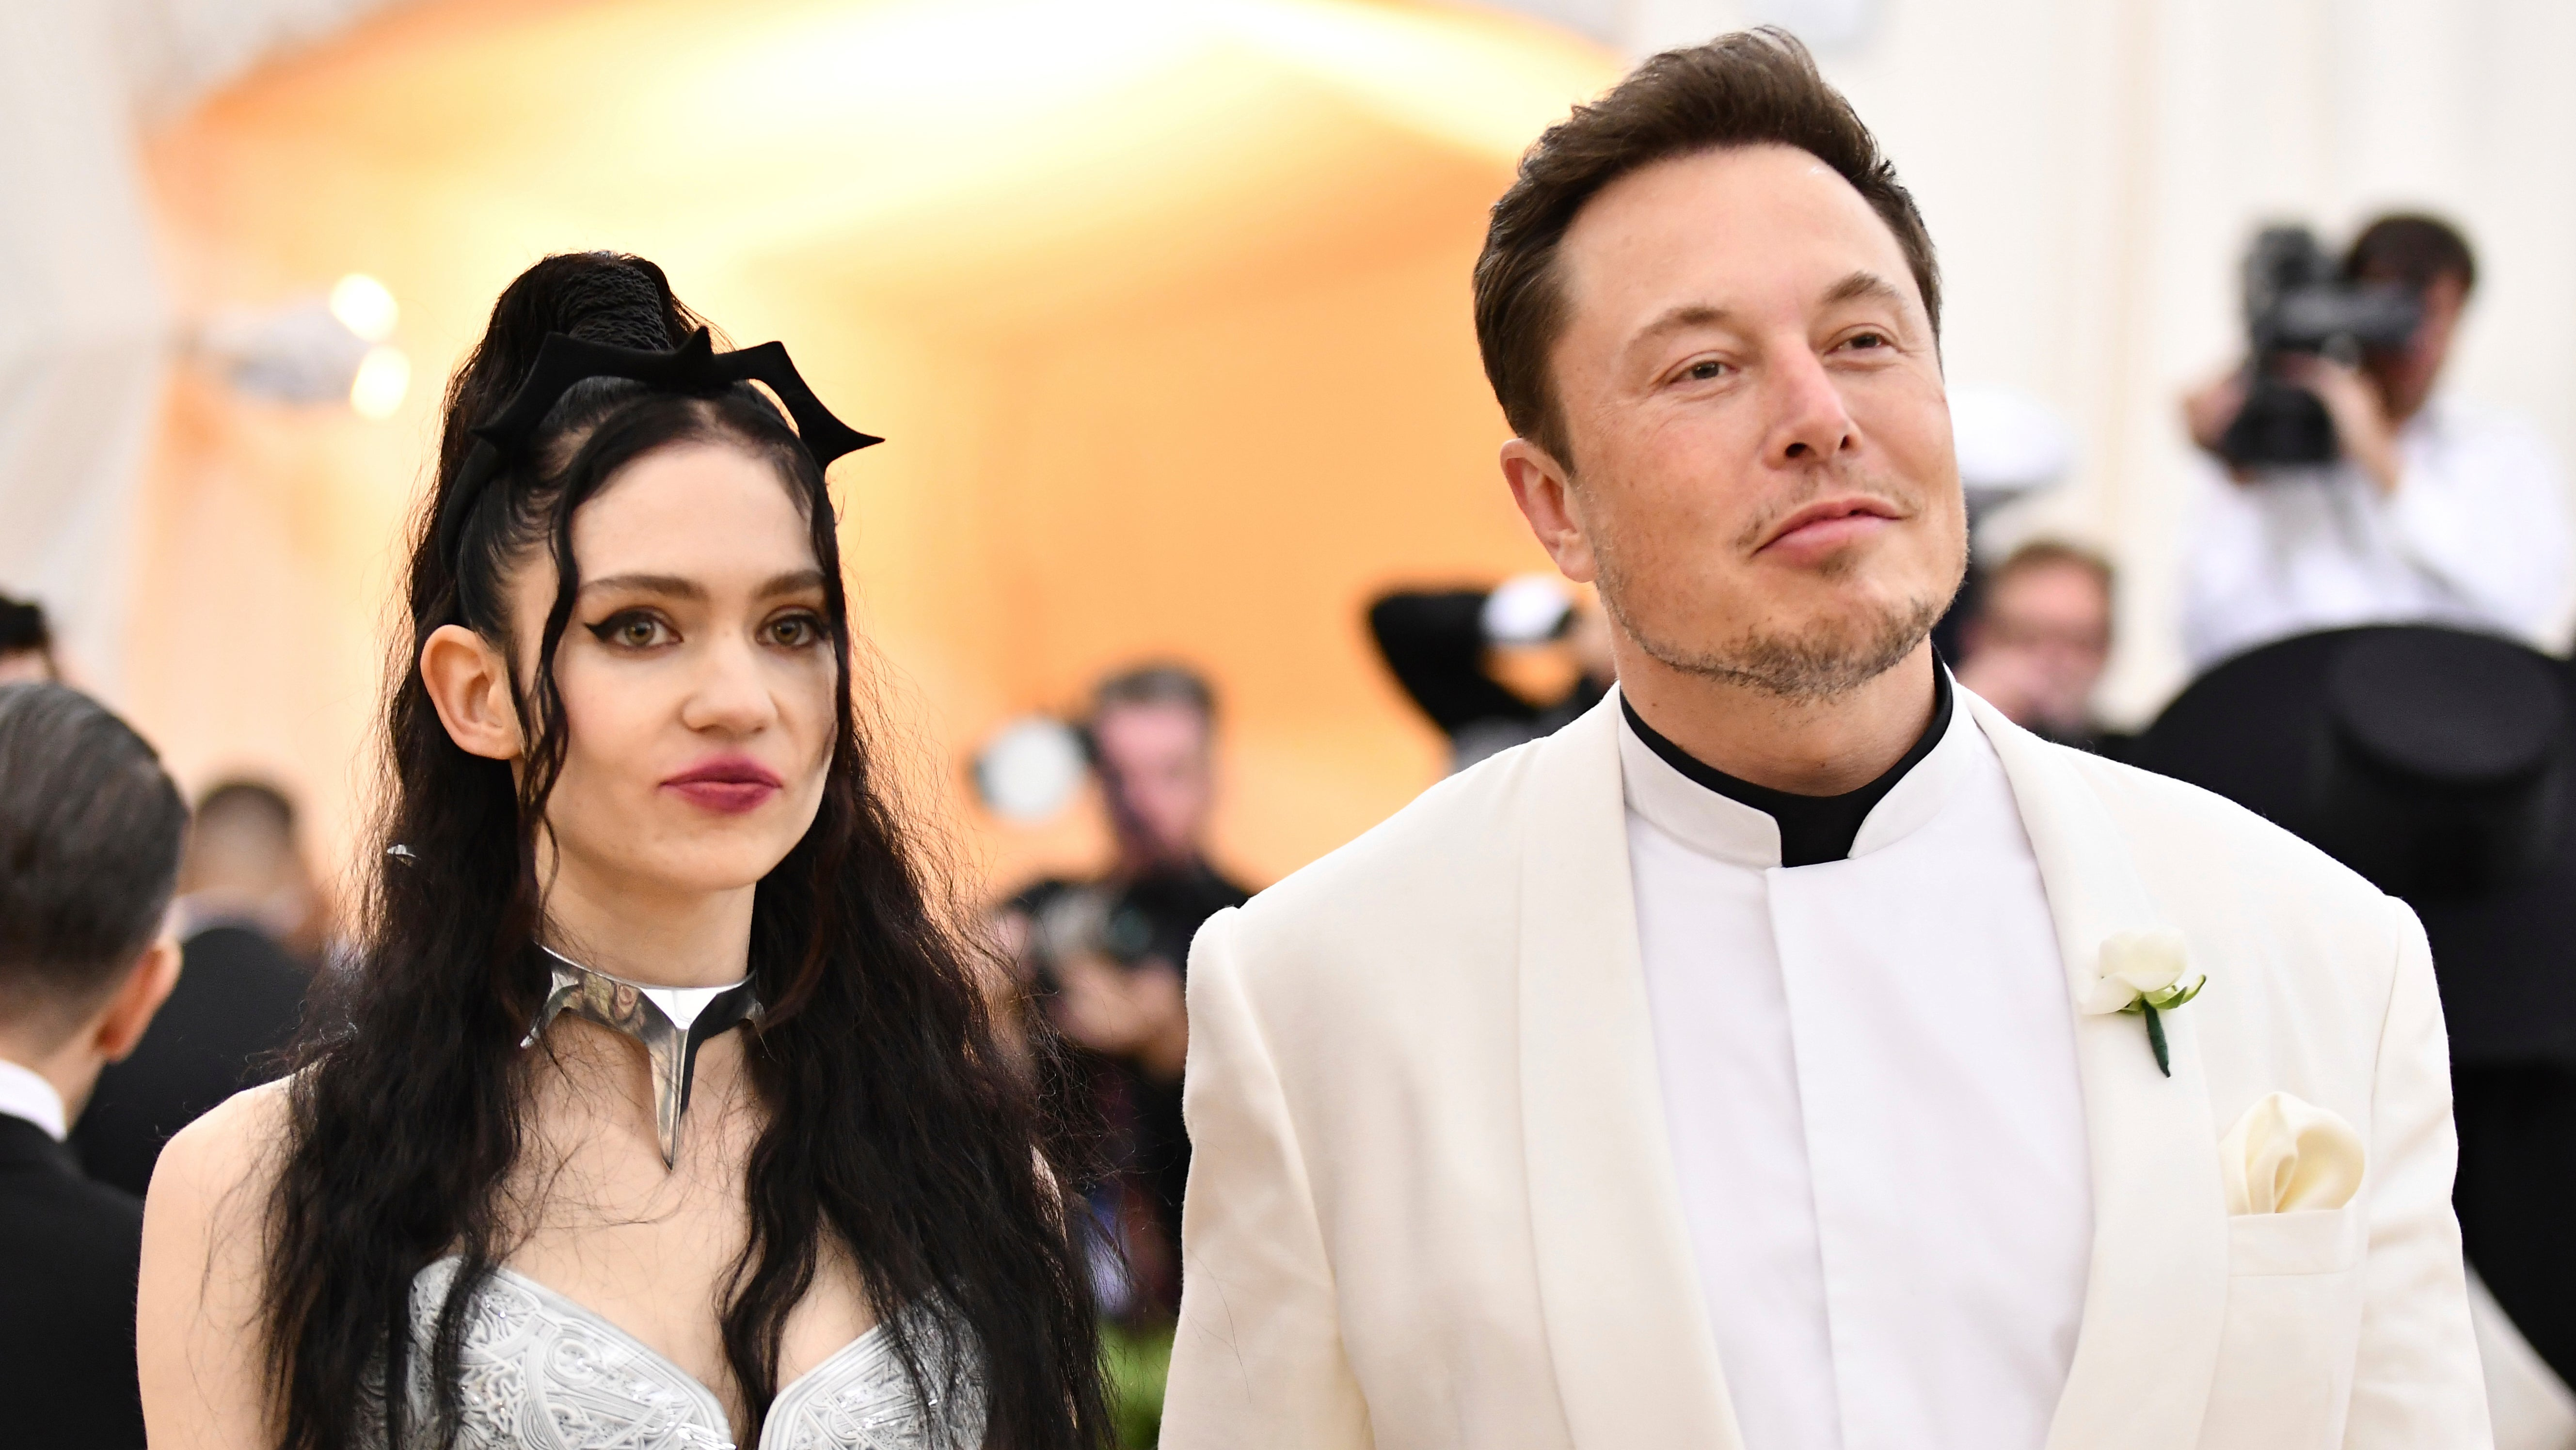 Elon Musk Reduces Twitter Use, Specifically By Unfollowing Grimes